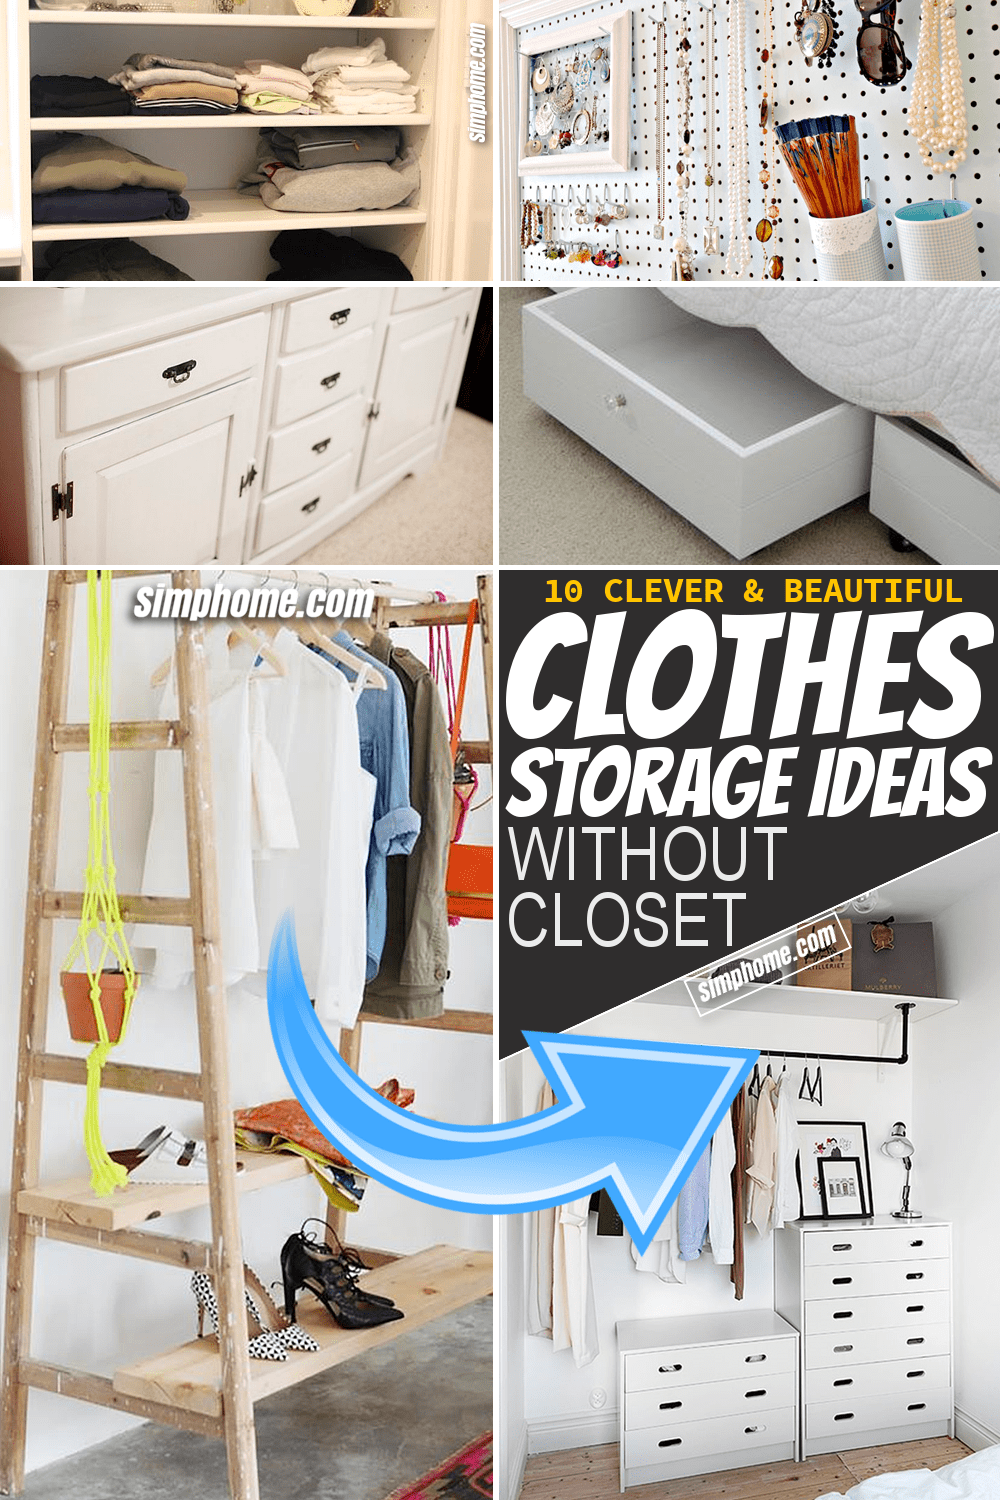 Simphome.com 10 Clothes Storage Idea that Would Work Even without Closet Featured Image Long